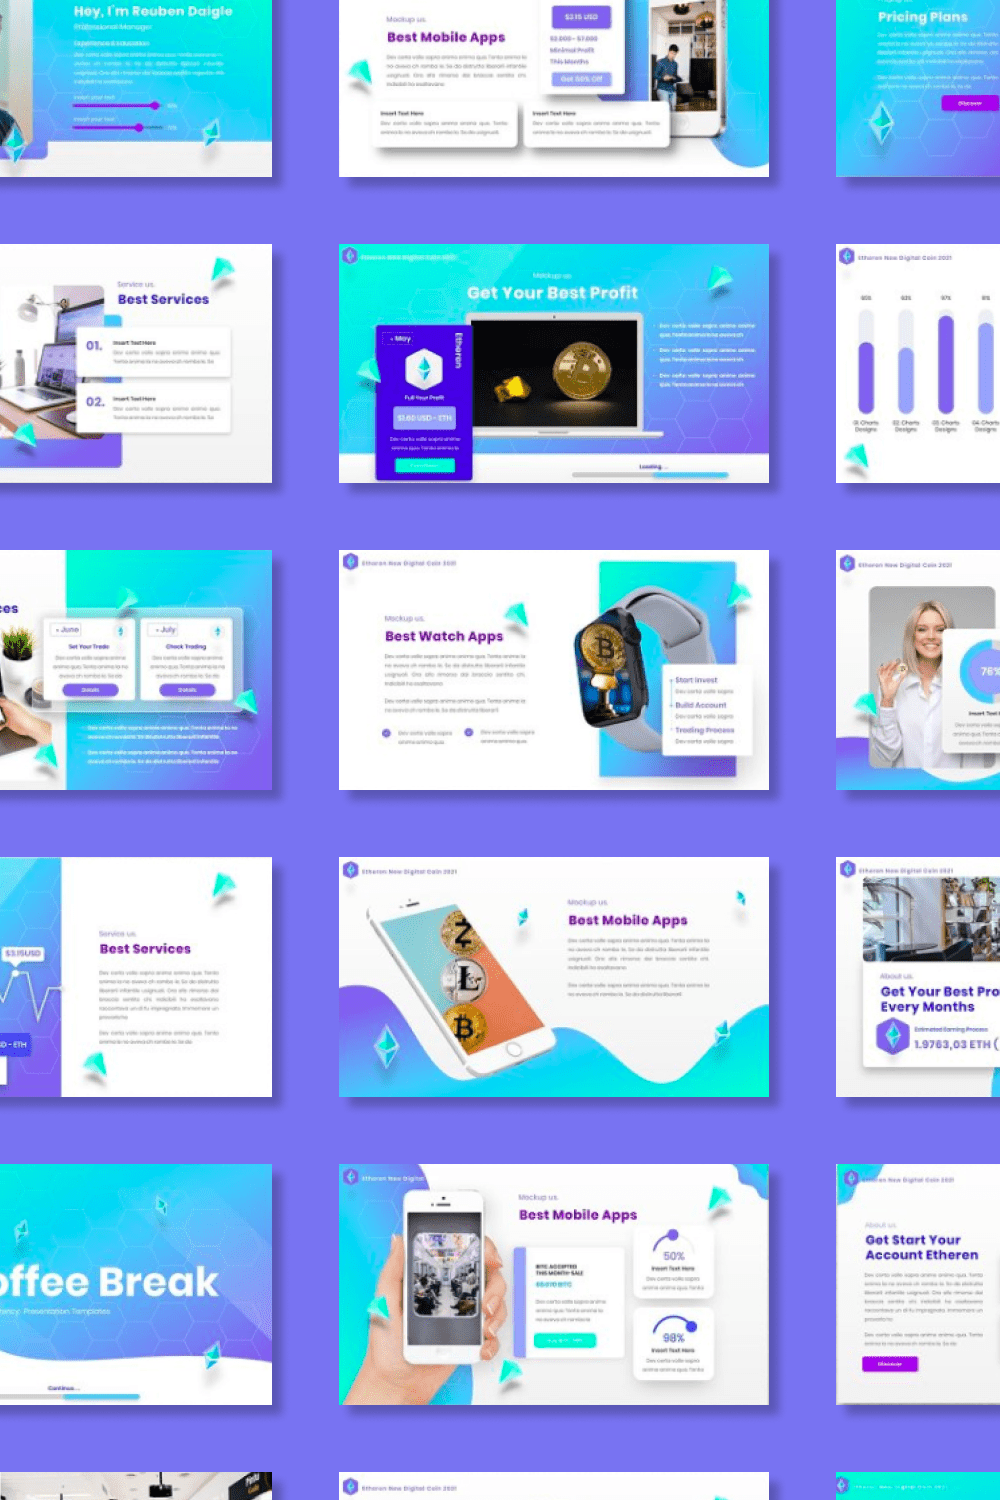 It's a big and colorful template for a real business.